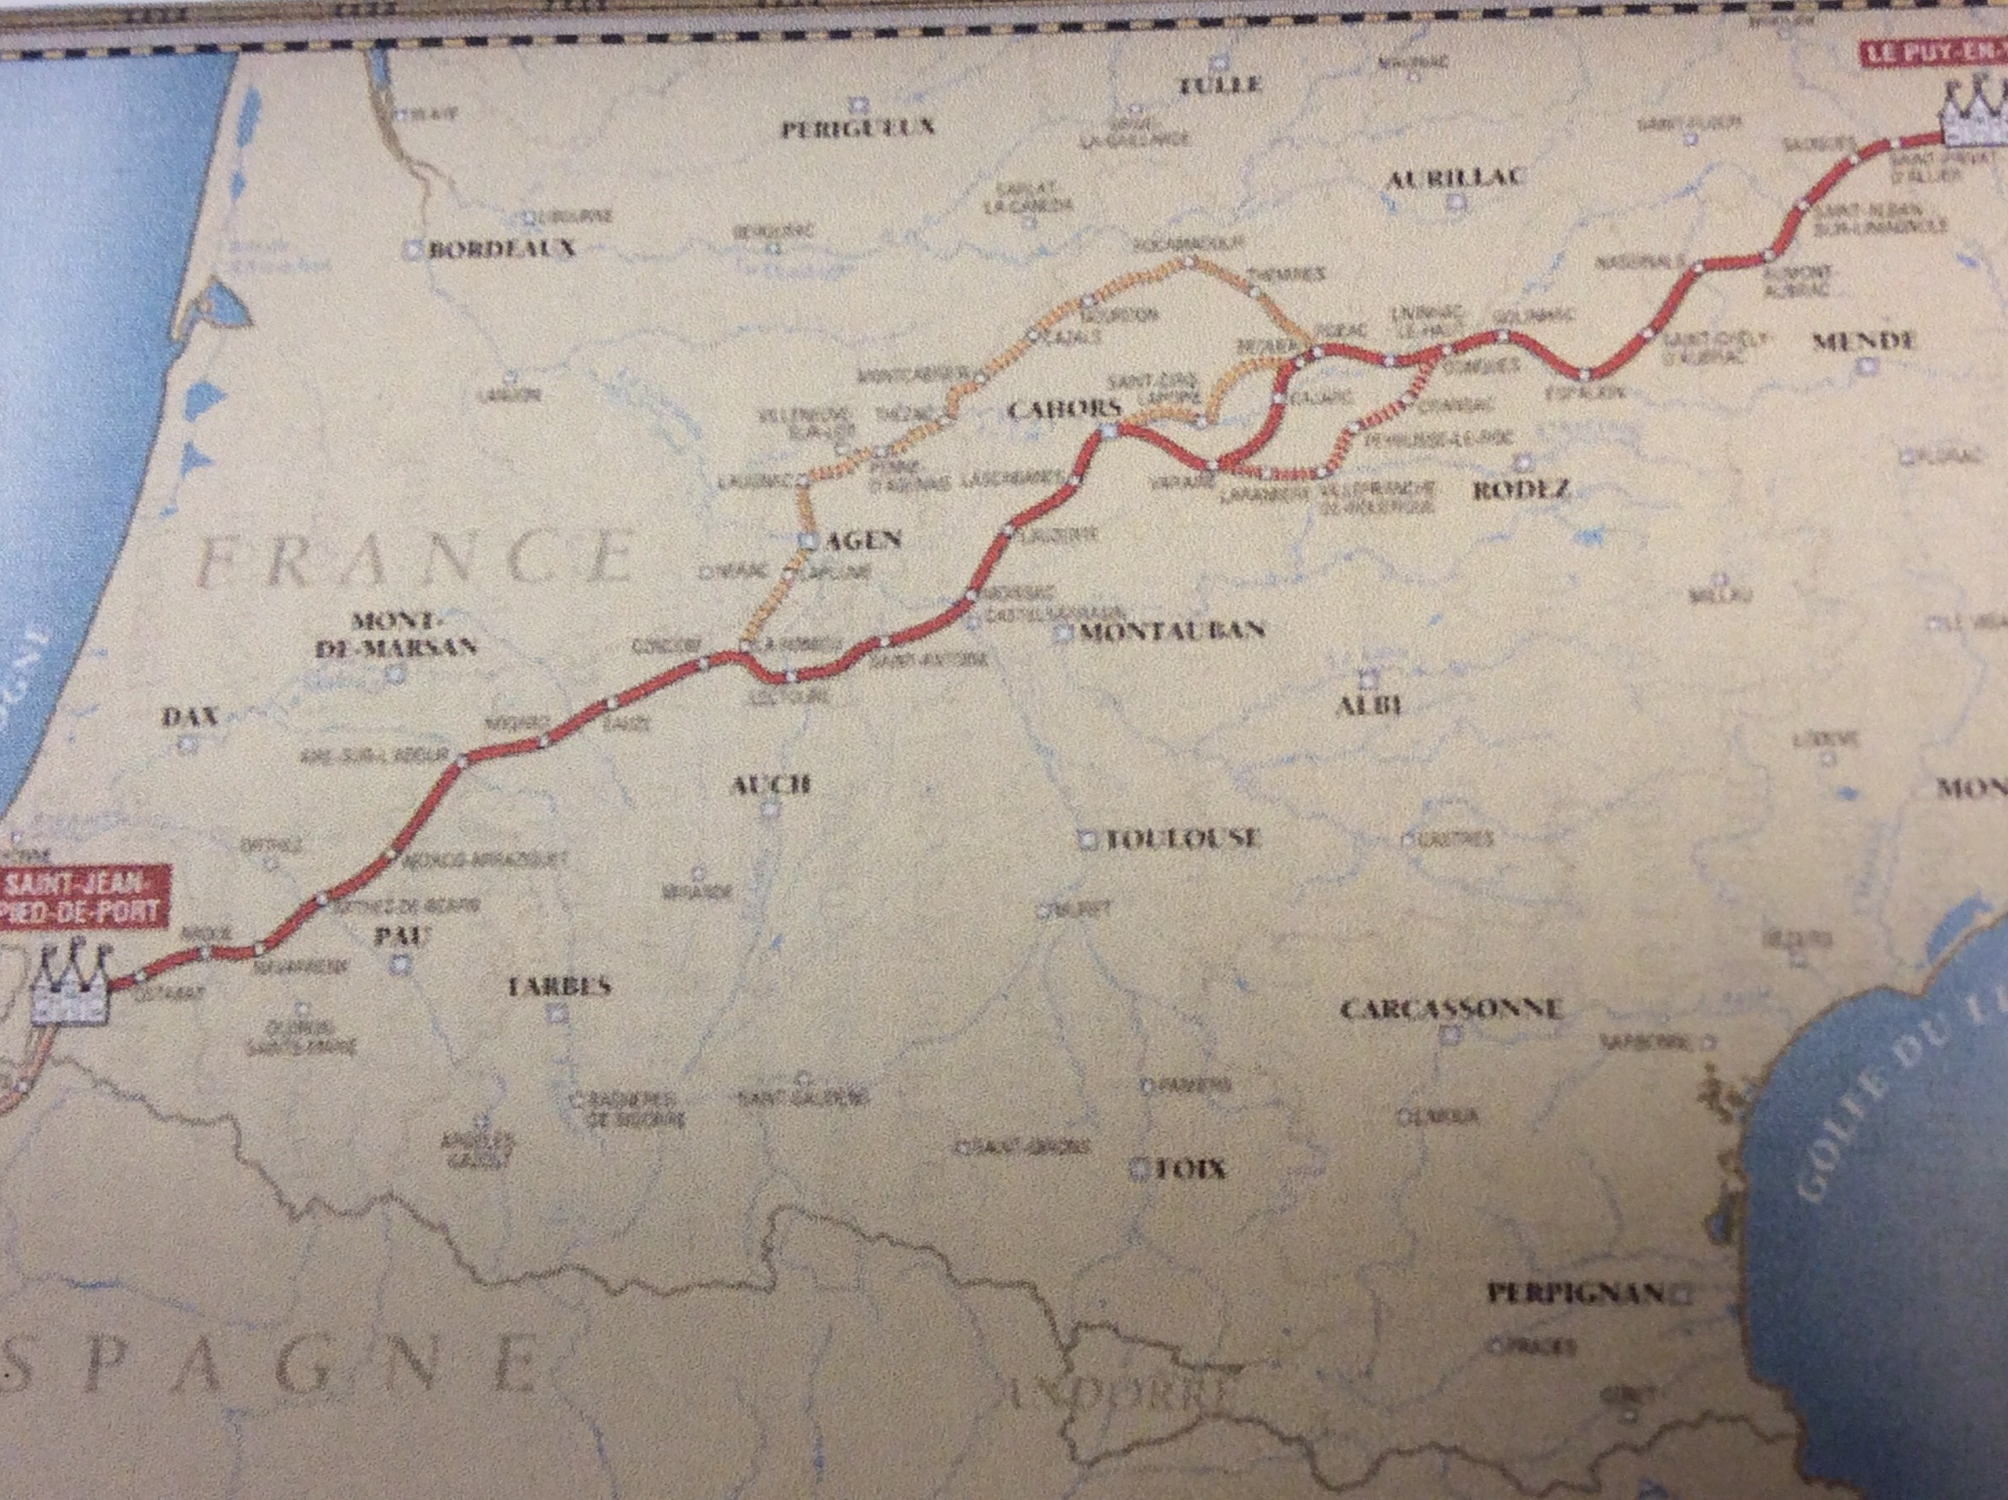 This is a map of the route we are taking.